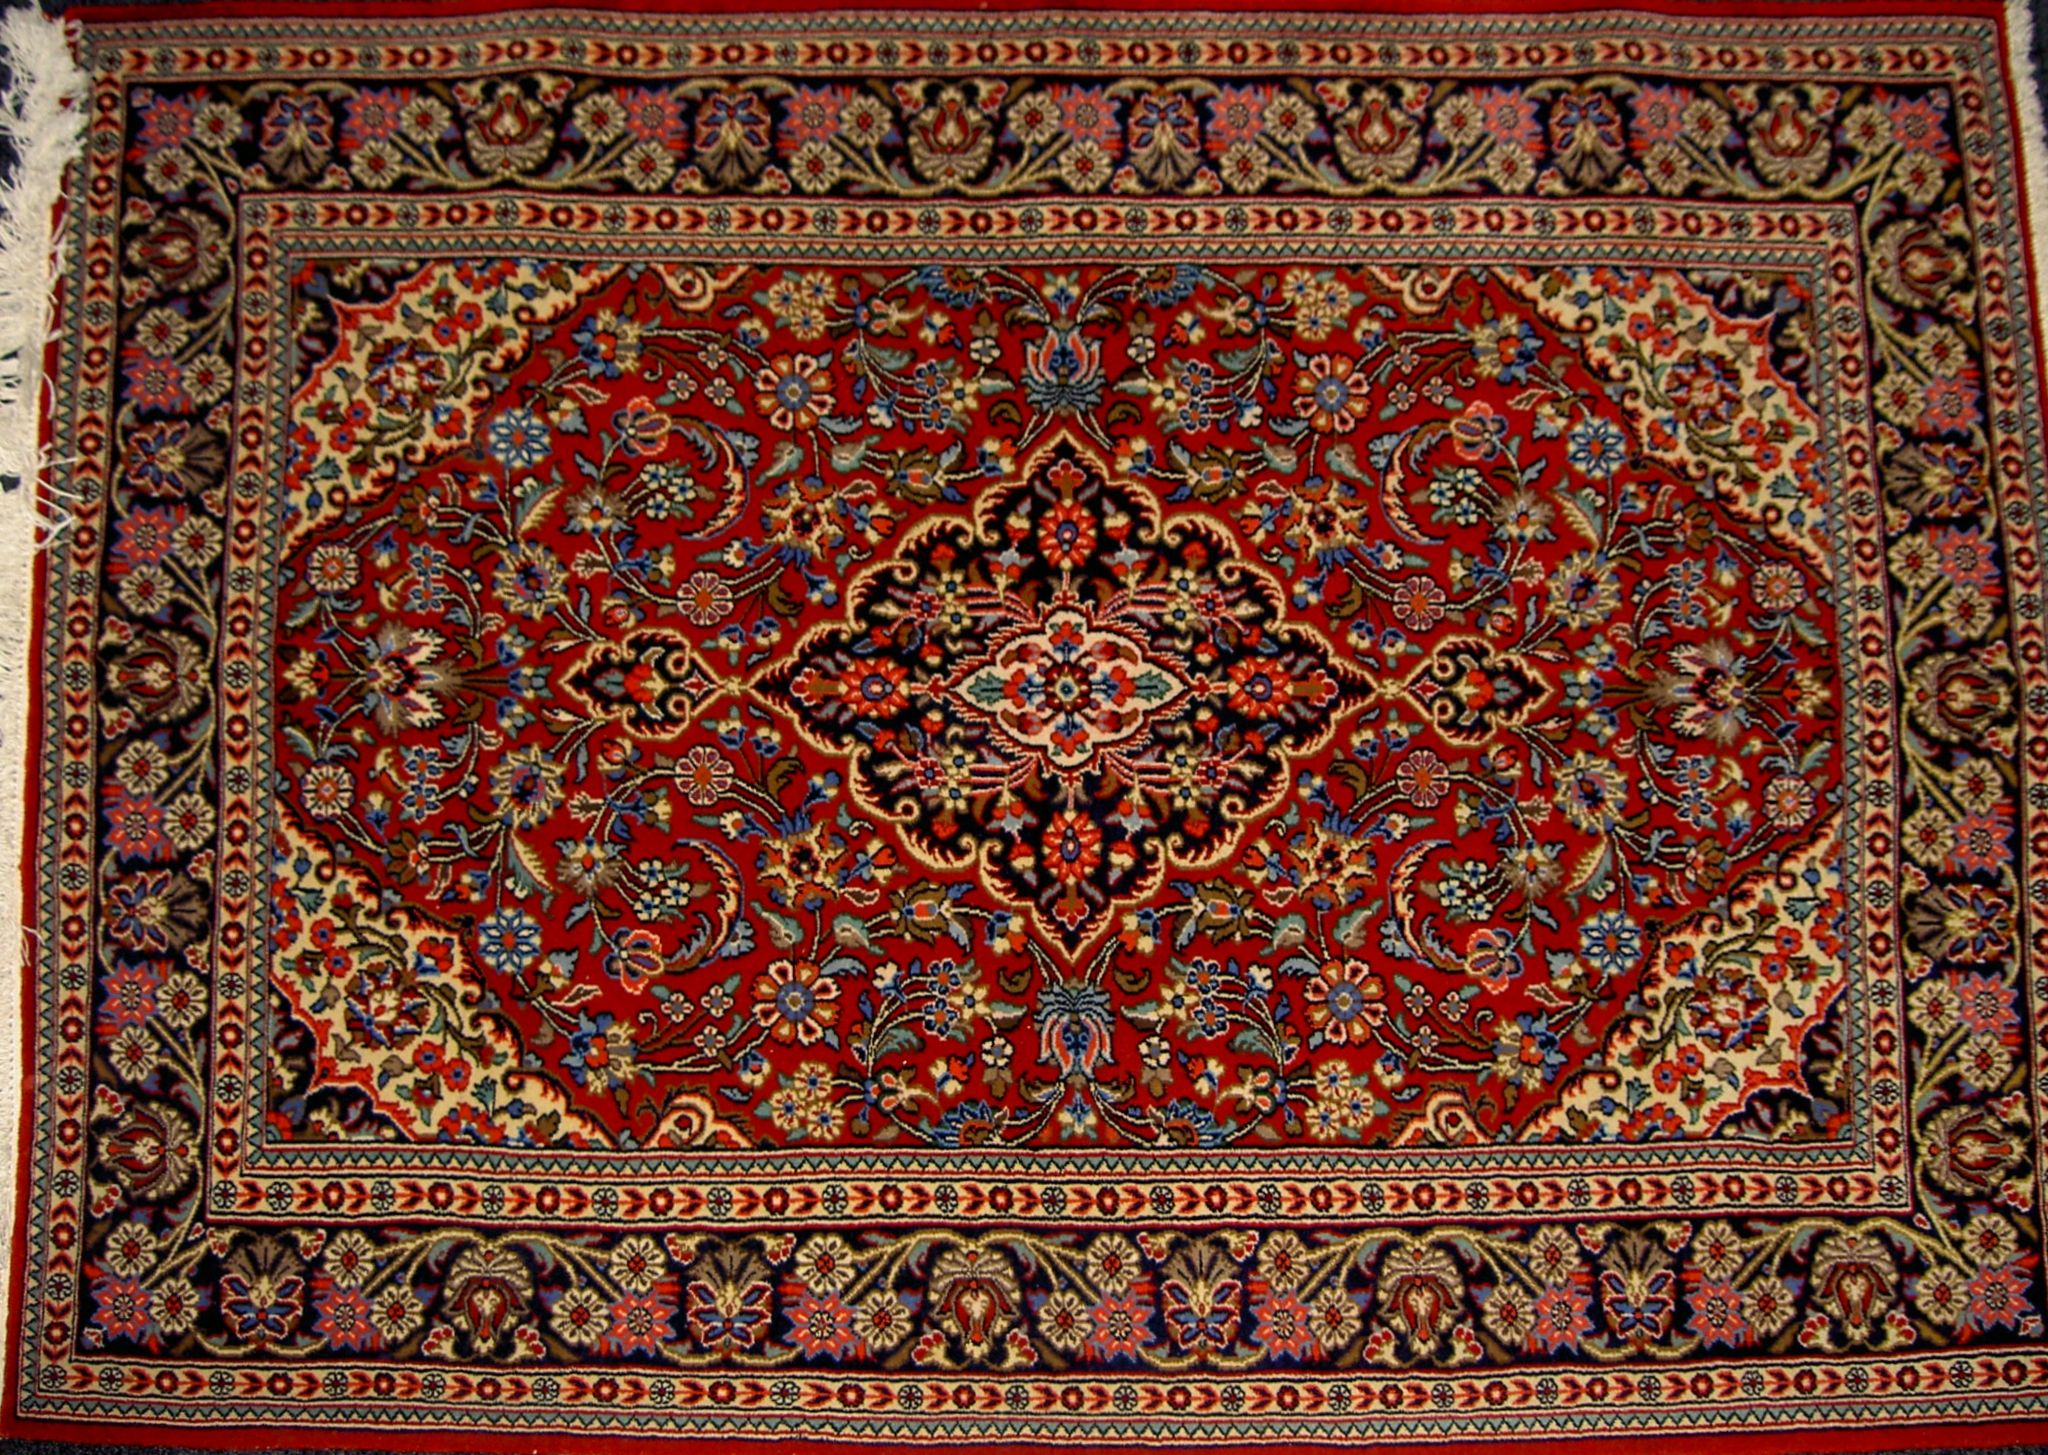 Rug from Qom, Iran. Design Lachak and Toranj